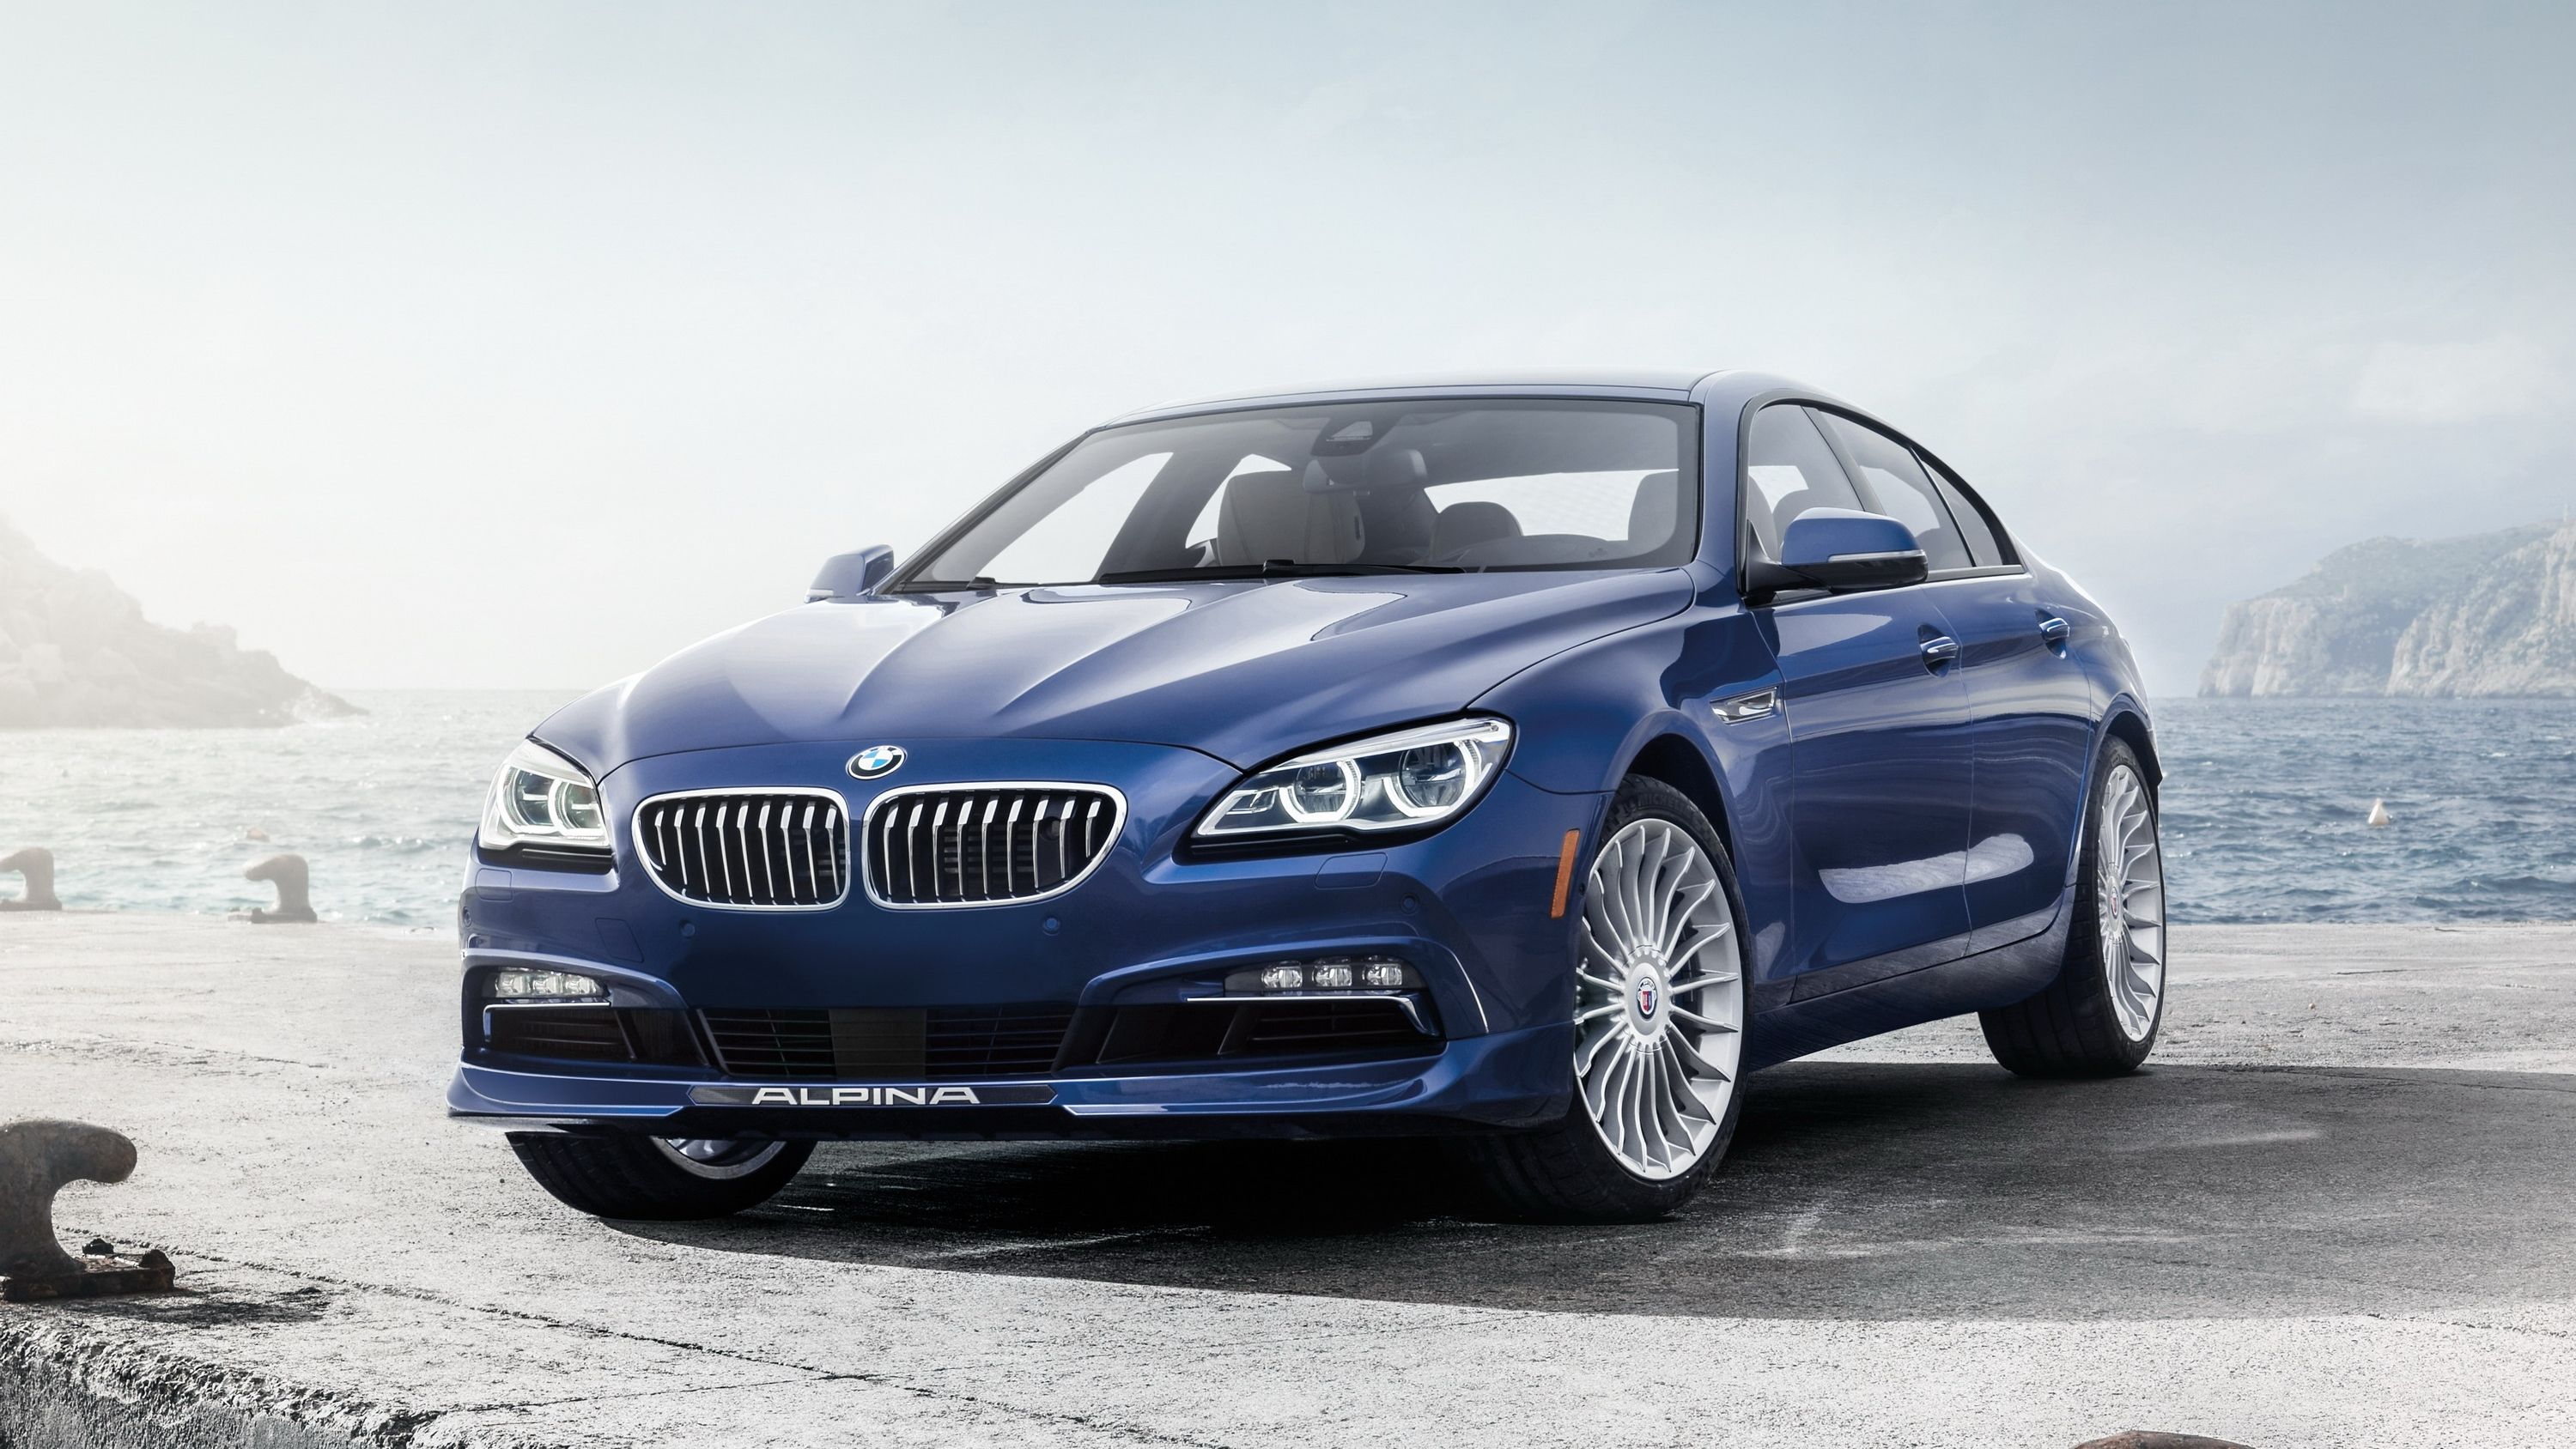 BMW Alpina B XDrive Gran Coupe Top Speed - Alpina bmw b6